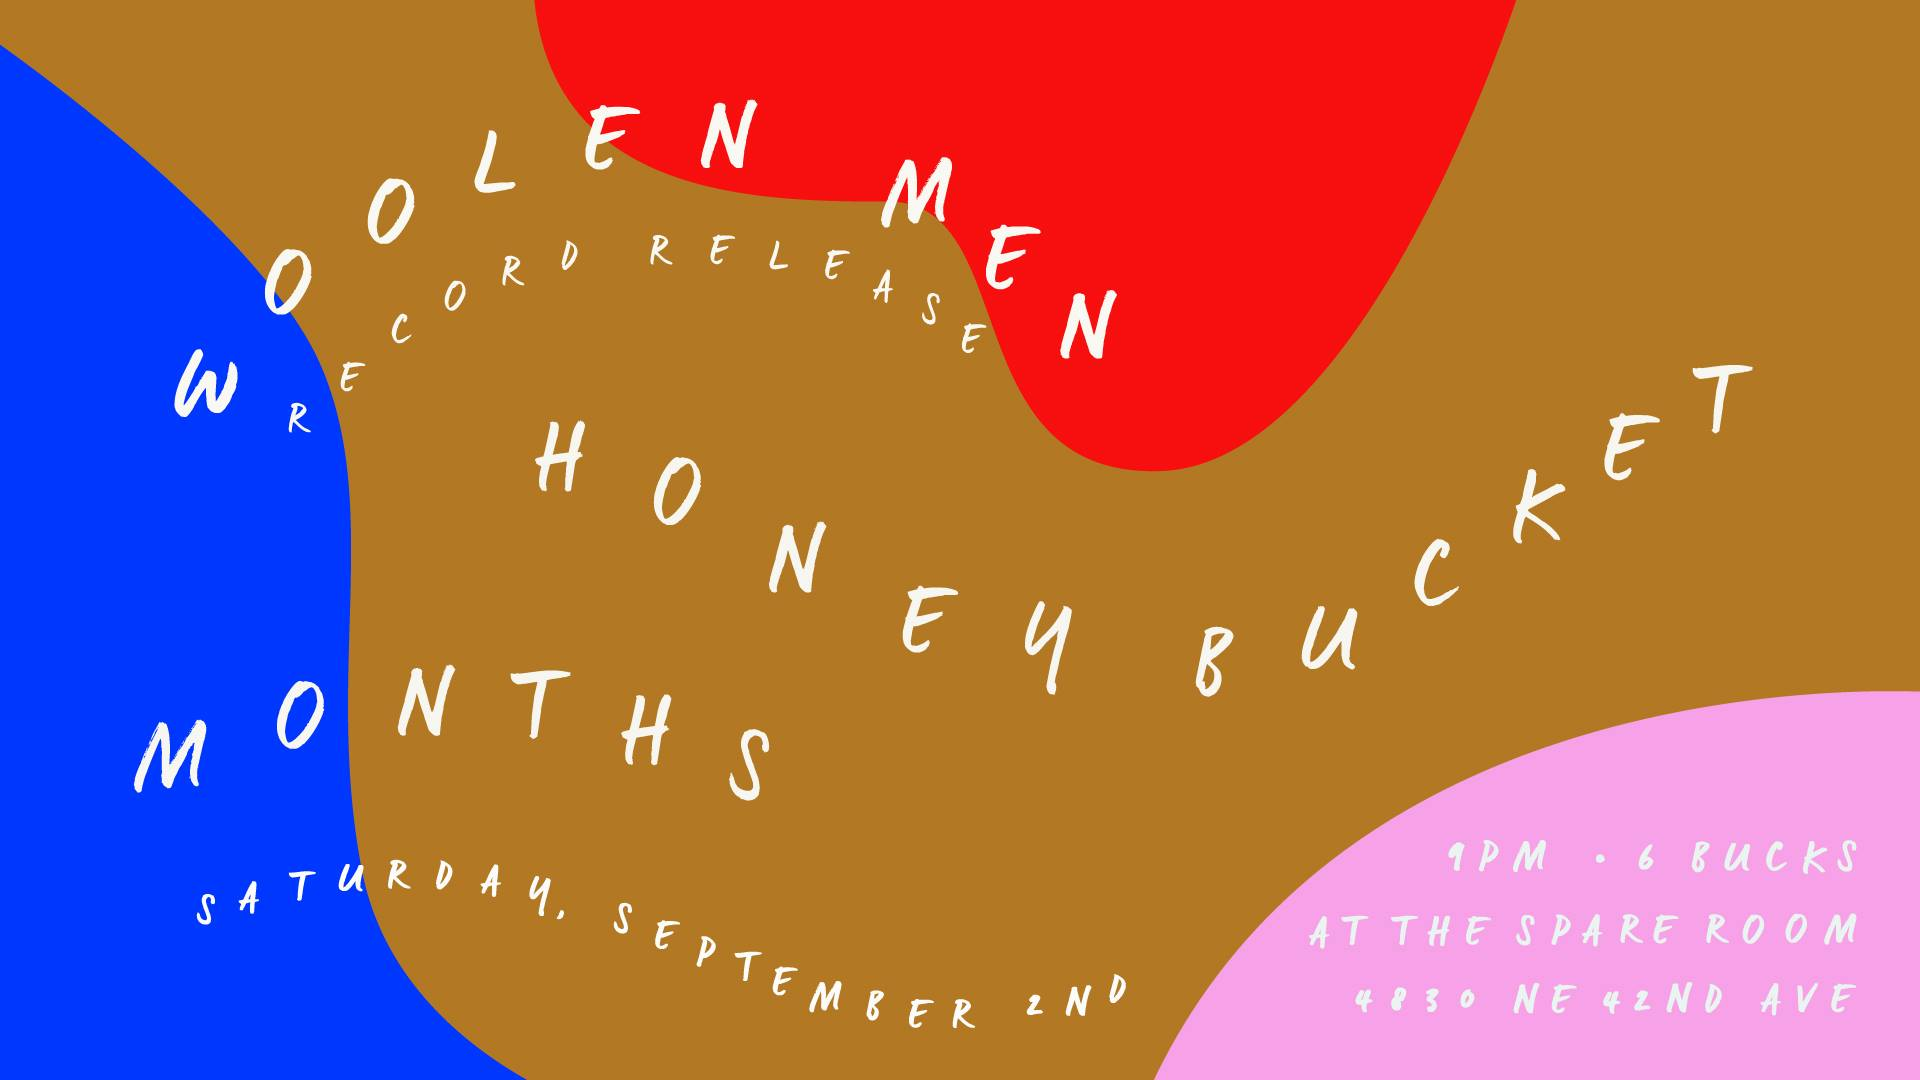 months opens woolen men's record release show along with honey bucket